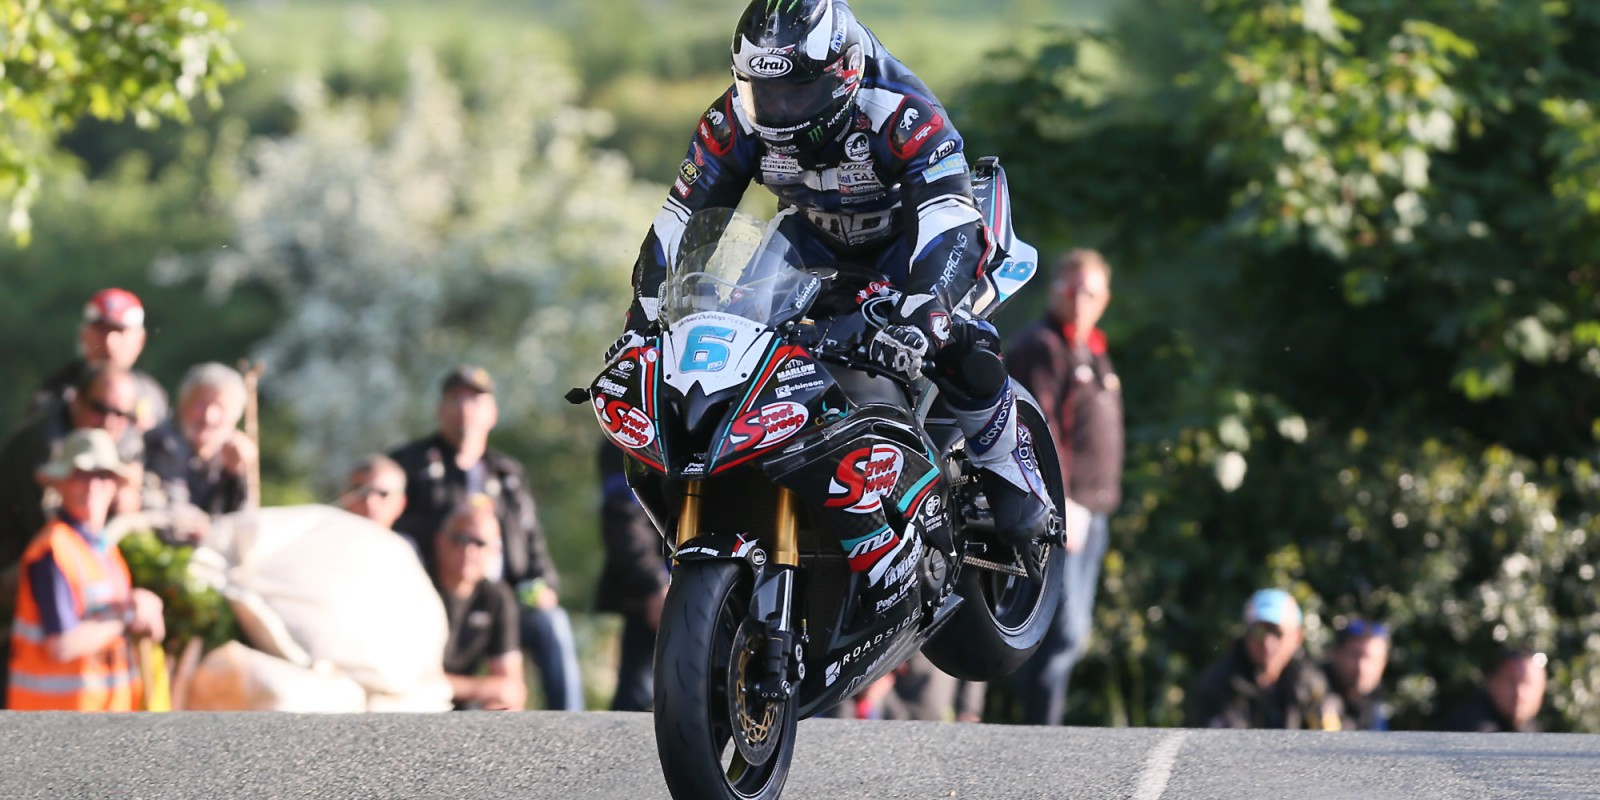 Images from practice week at the 2016 Isle of Man TT